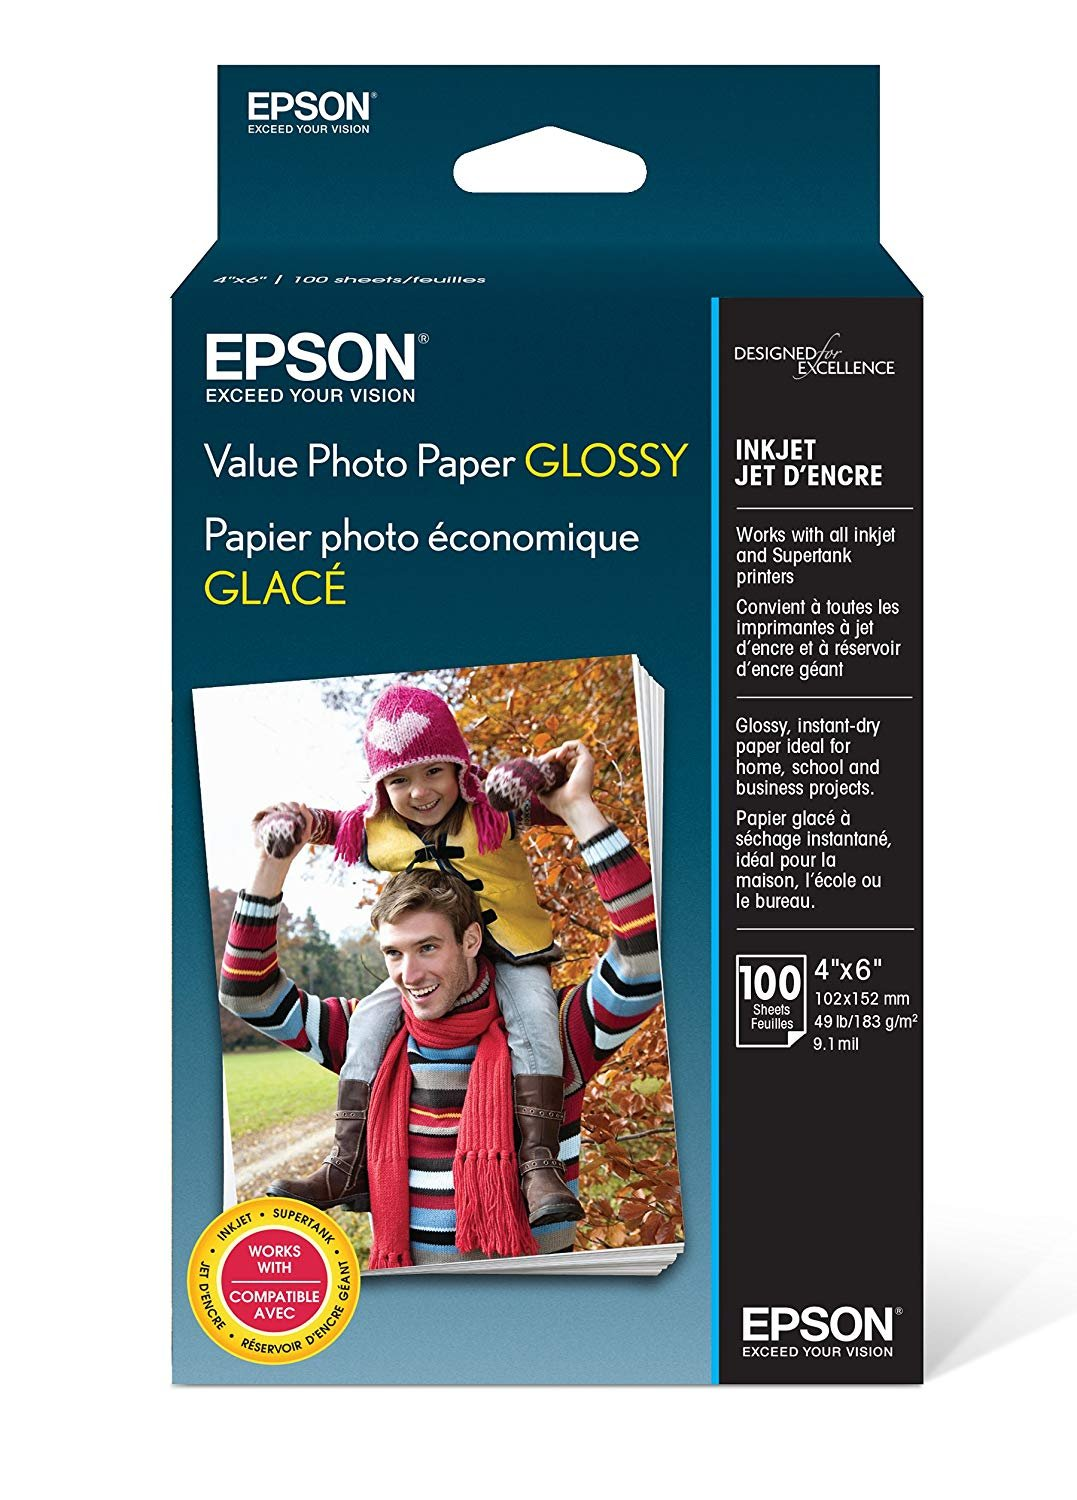 Epson Value Photo Paper Glossy, 4''x6'', 100 Sheets (S400034) 3 Pack